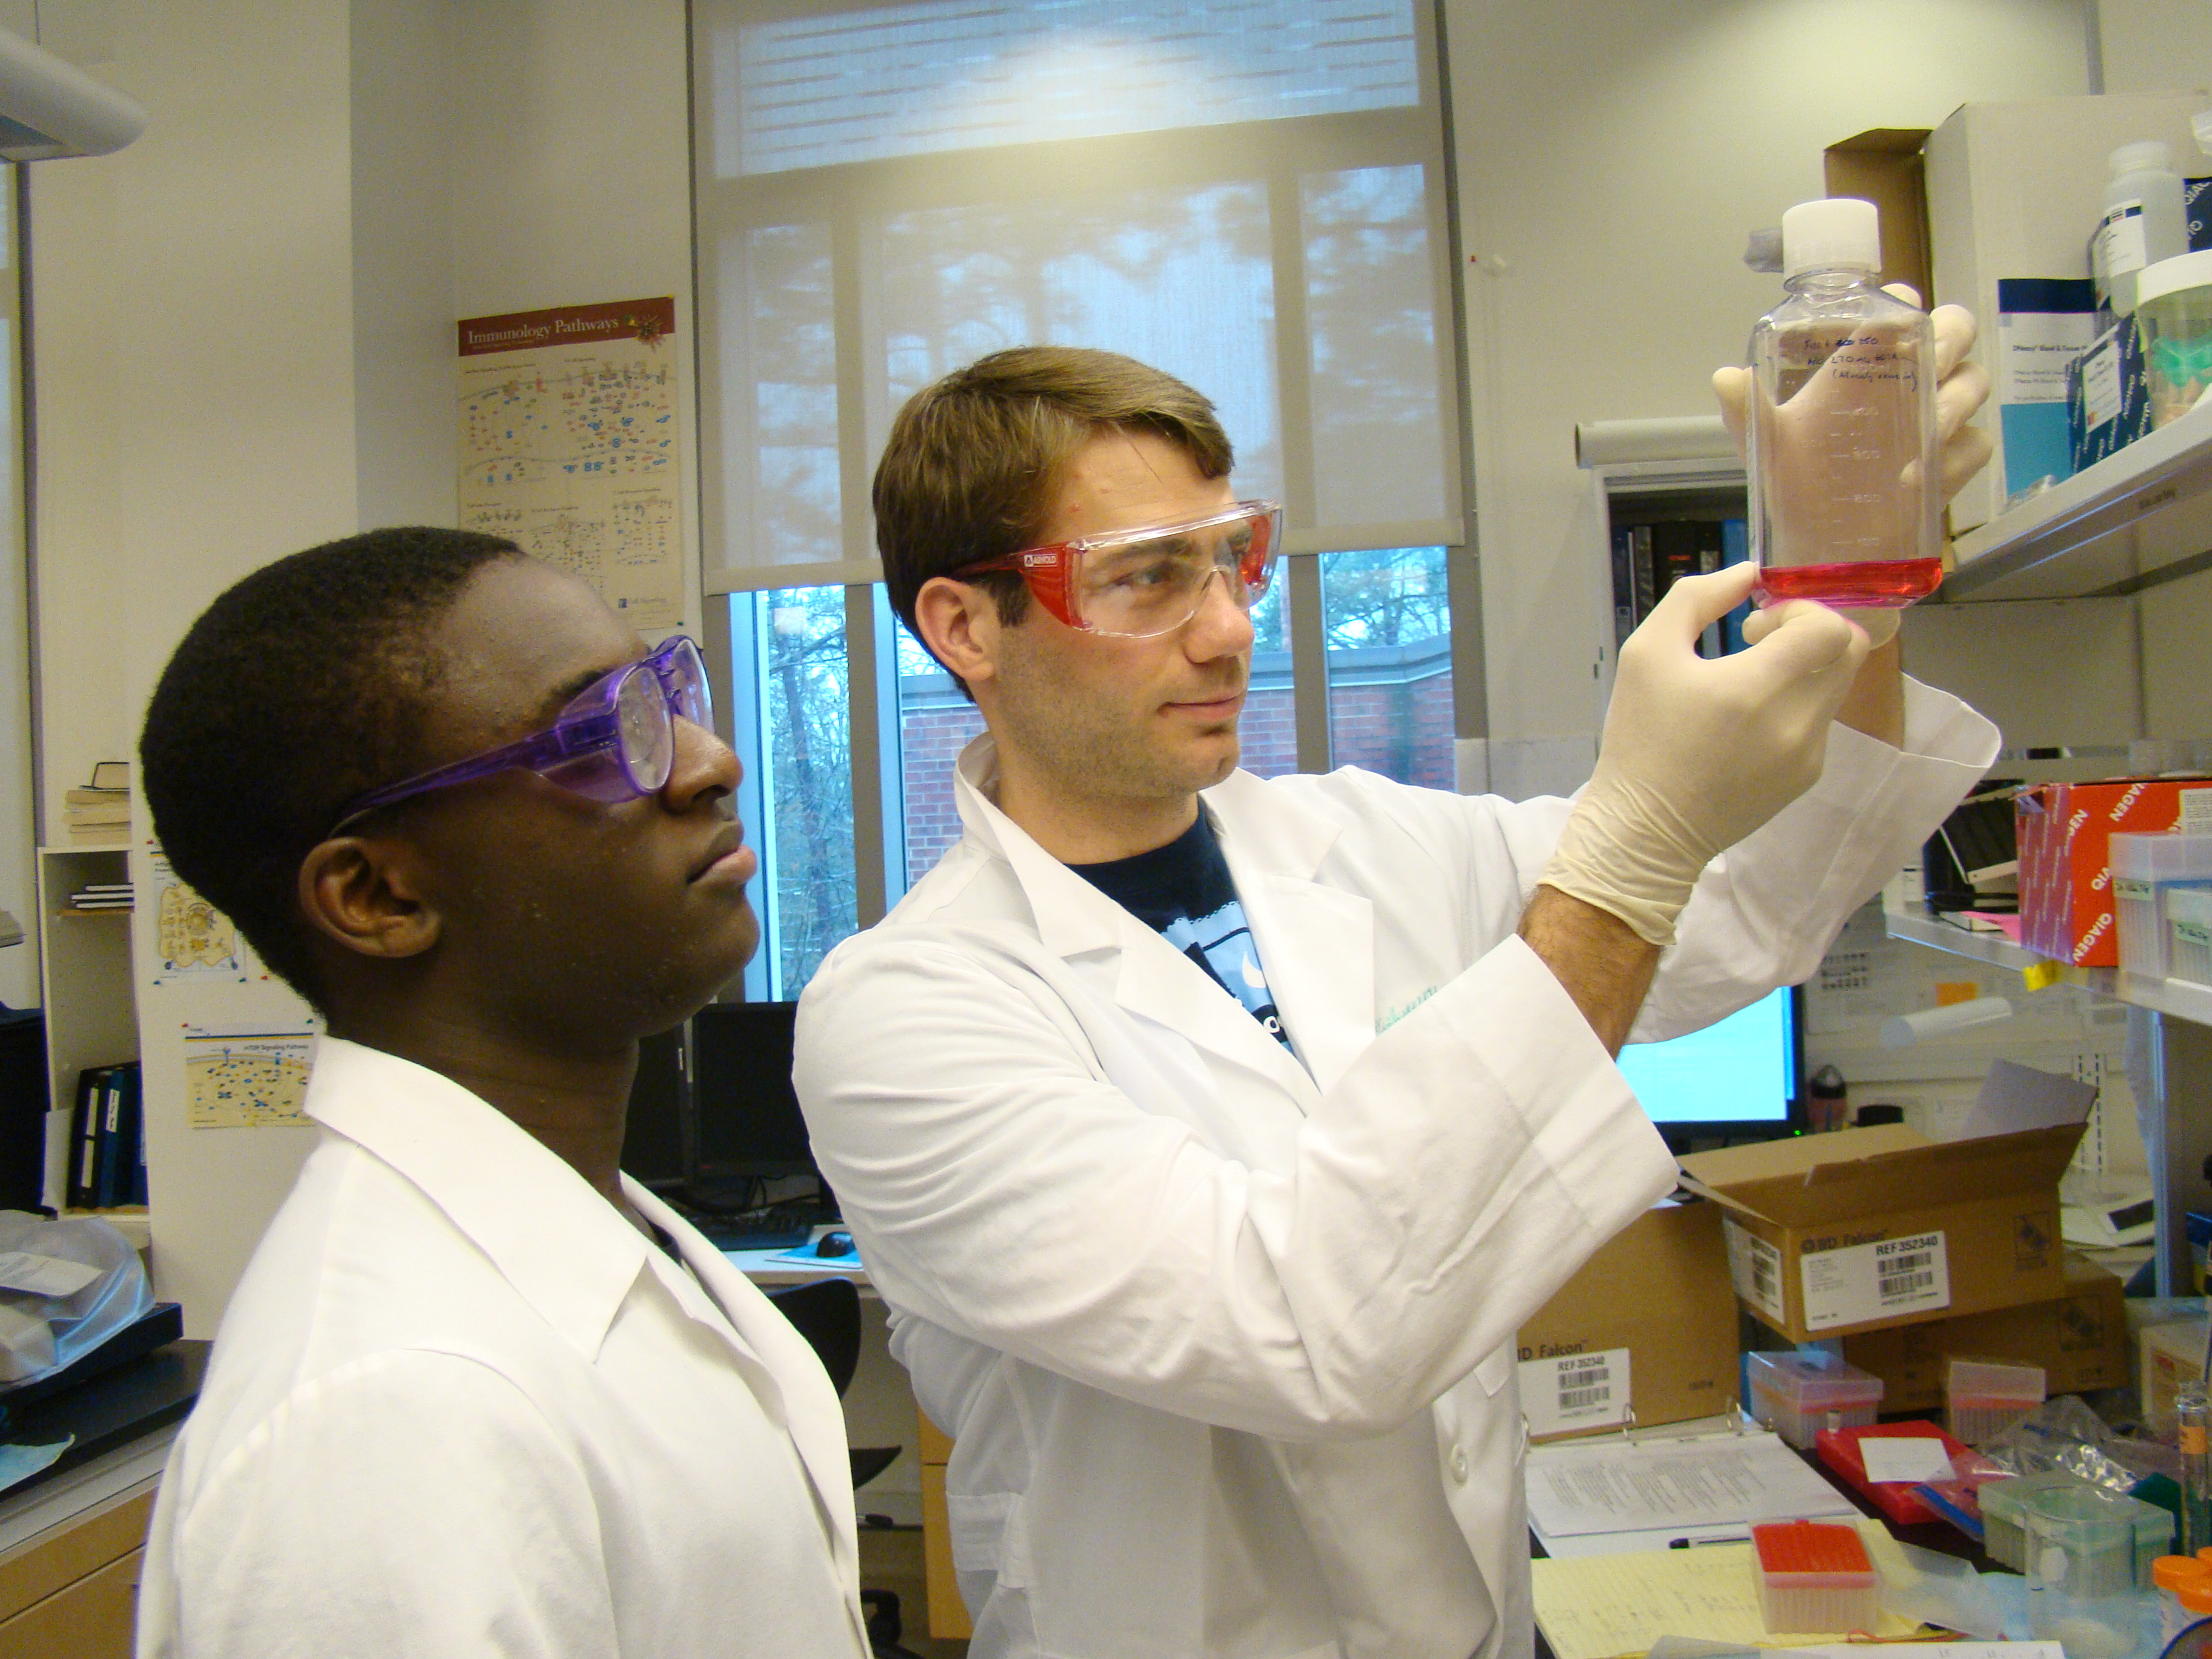 Two students from the Department of Nutrition analyze a sample.